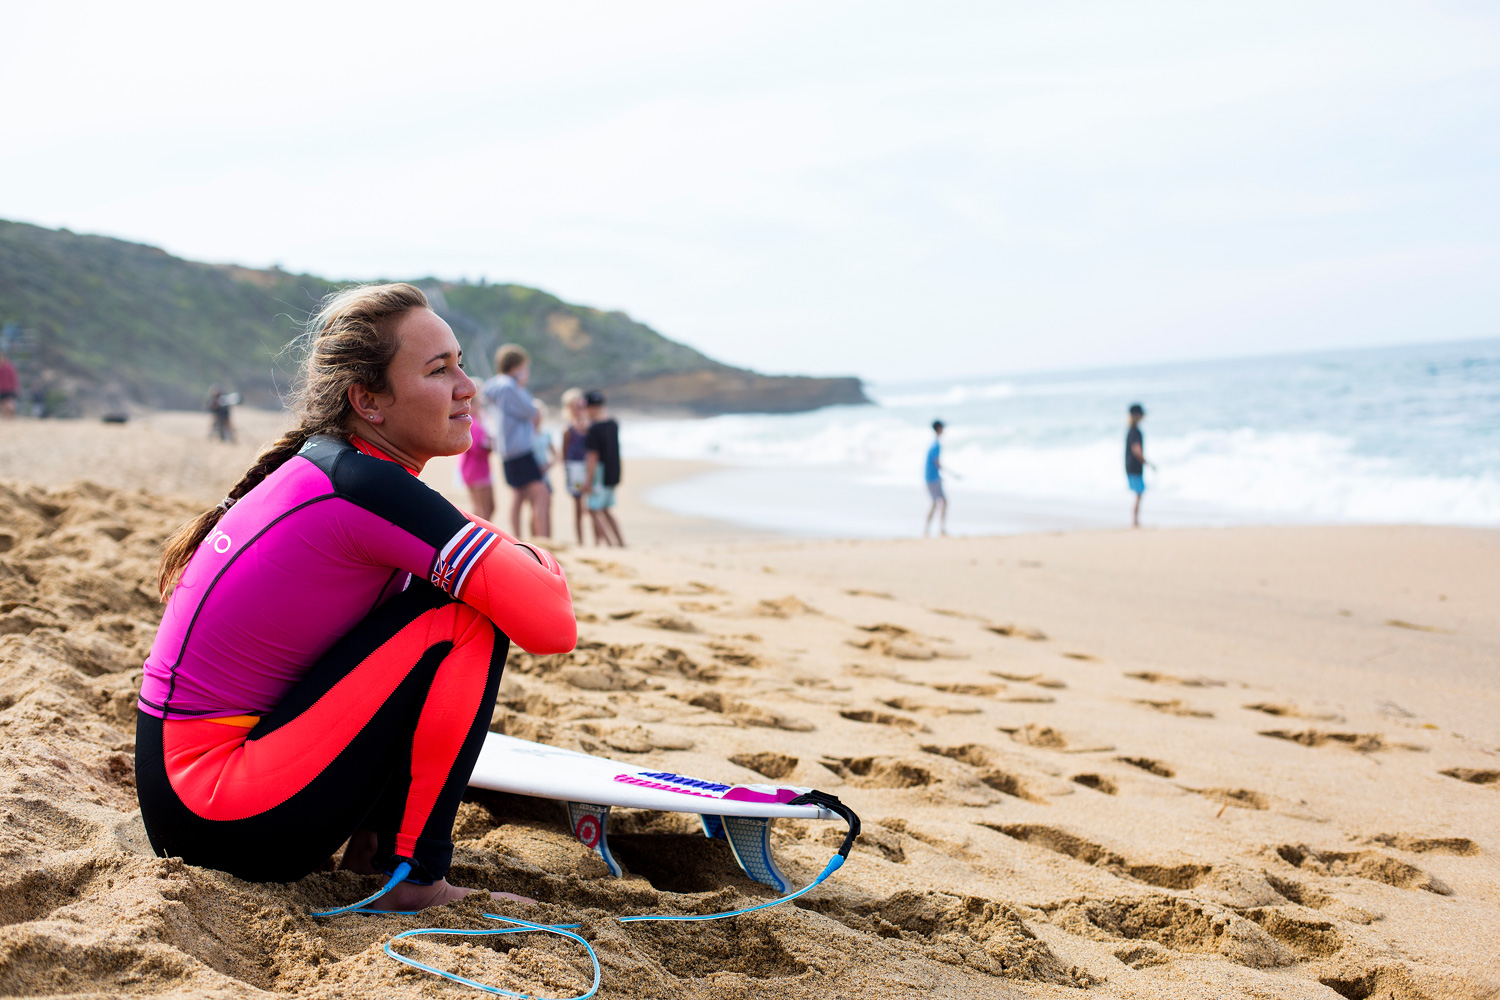 Two-time ASP Women's World Champion Carissa Moore prepares for her first round heat at the Rip Curl Pro Bells Beach.